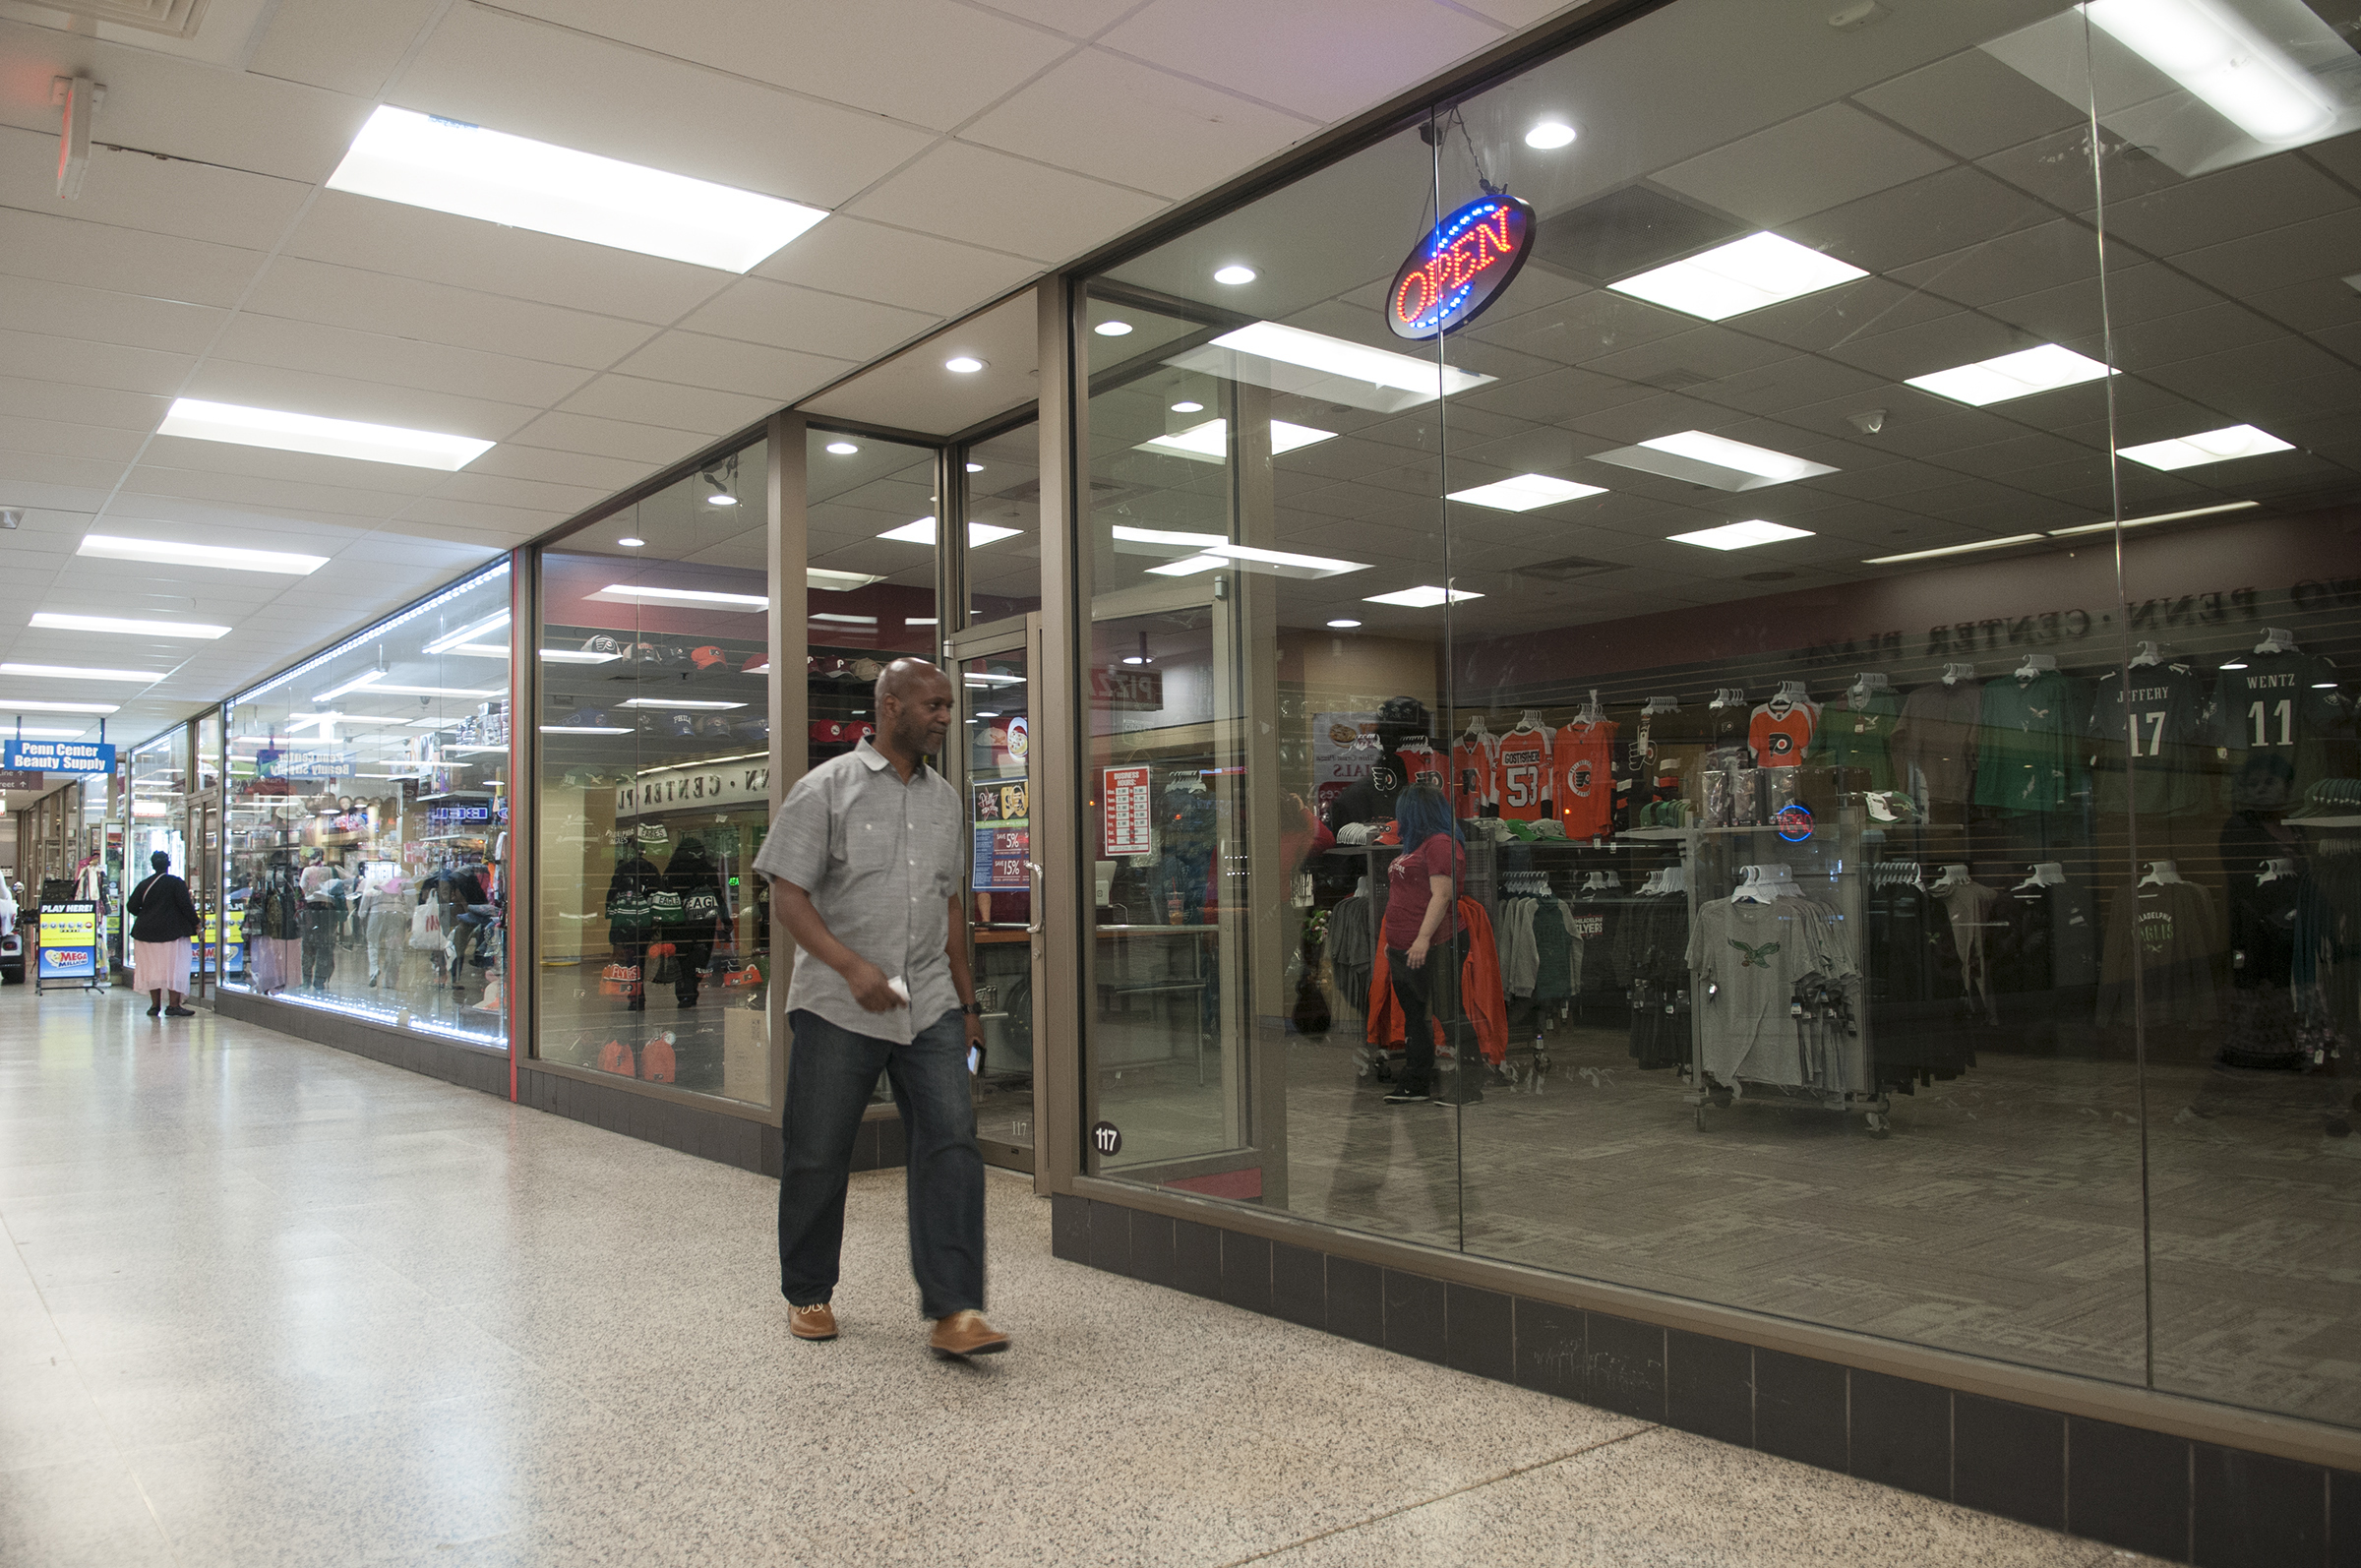 Philly Team Store is a new pop up sports store in Suburban Station at 16th and JFK Boulevard. The transit hub is undergoing a major retail upgrade with new food, apparel and service shops.